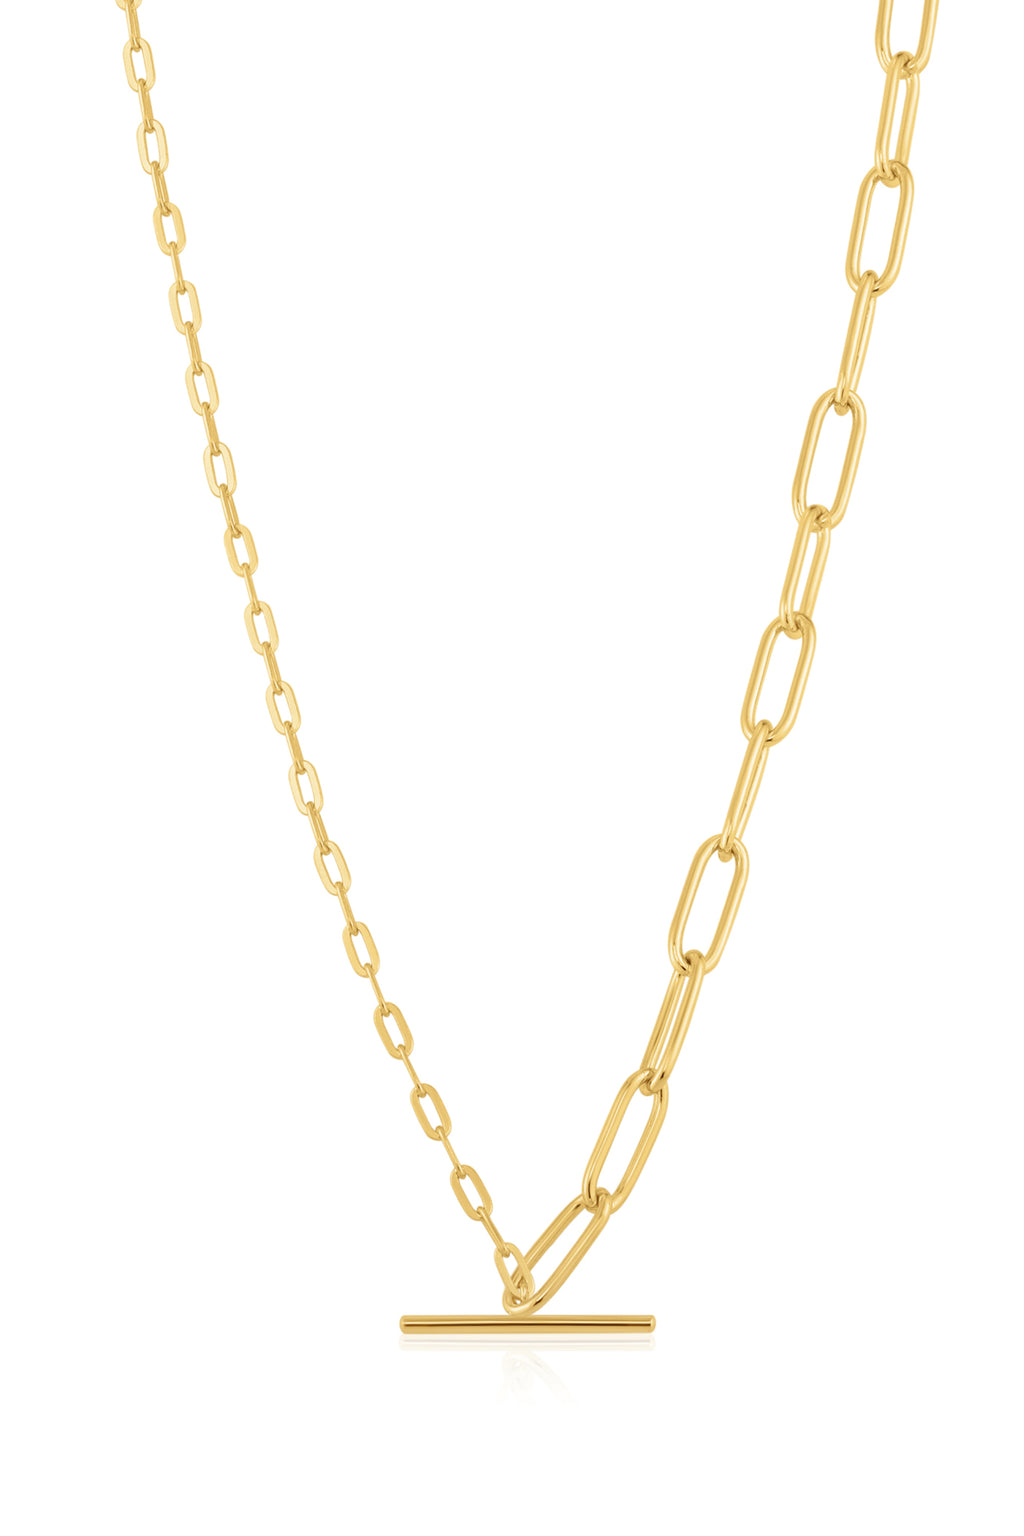 Ania Haie T-Bar Link Necklace - The Mercantile London